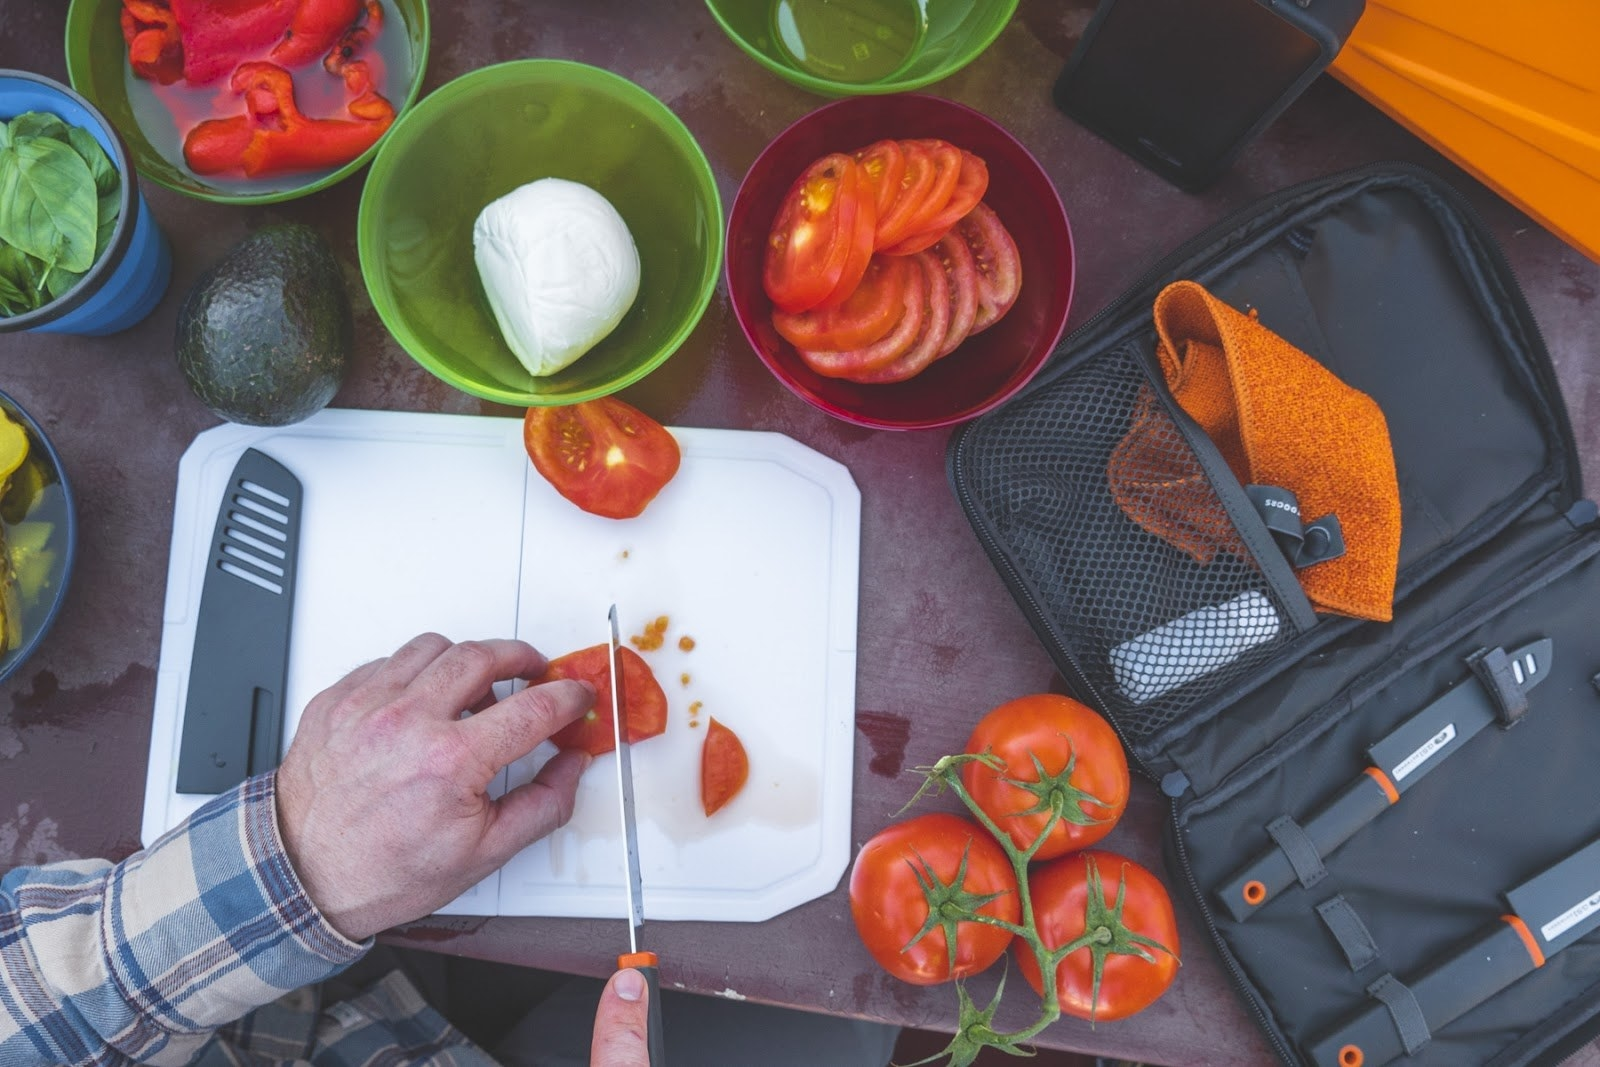 Hands slicing a tomato with the chef's knife and cutting board